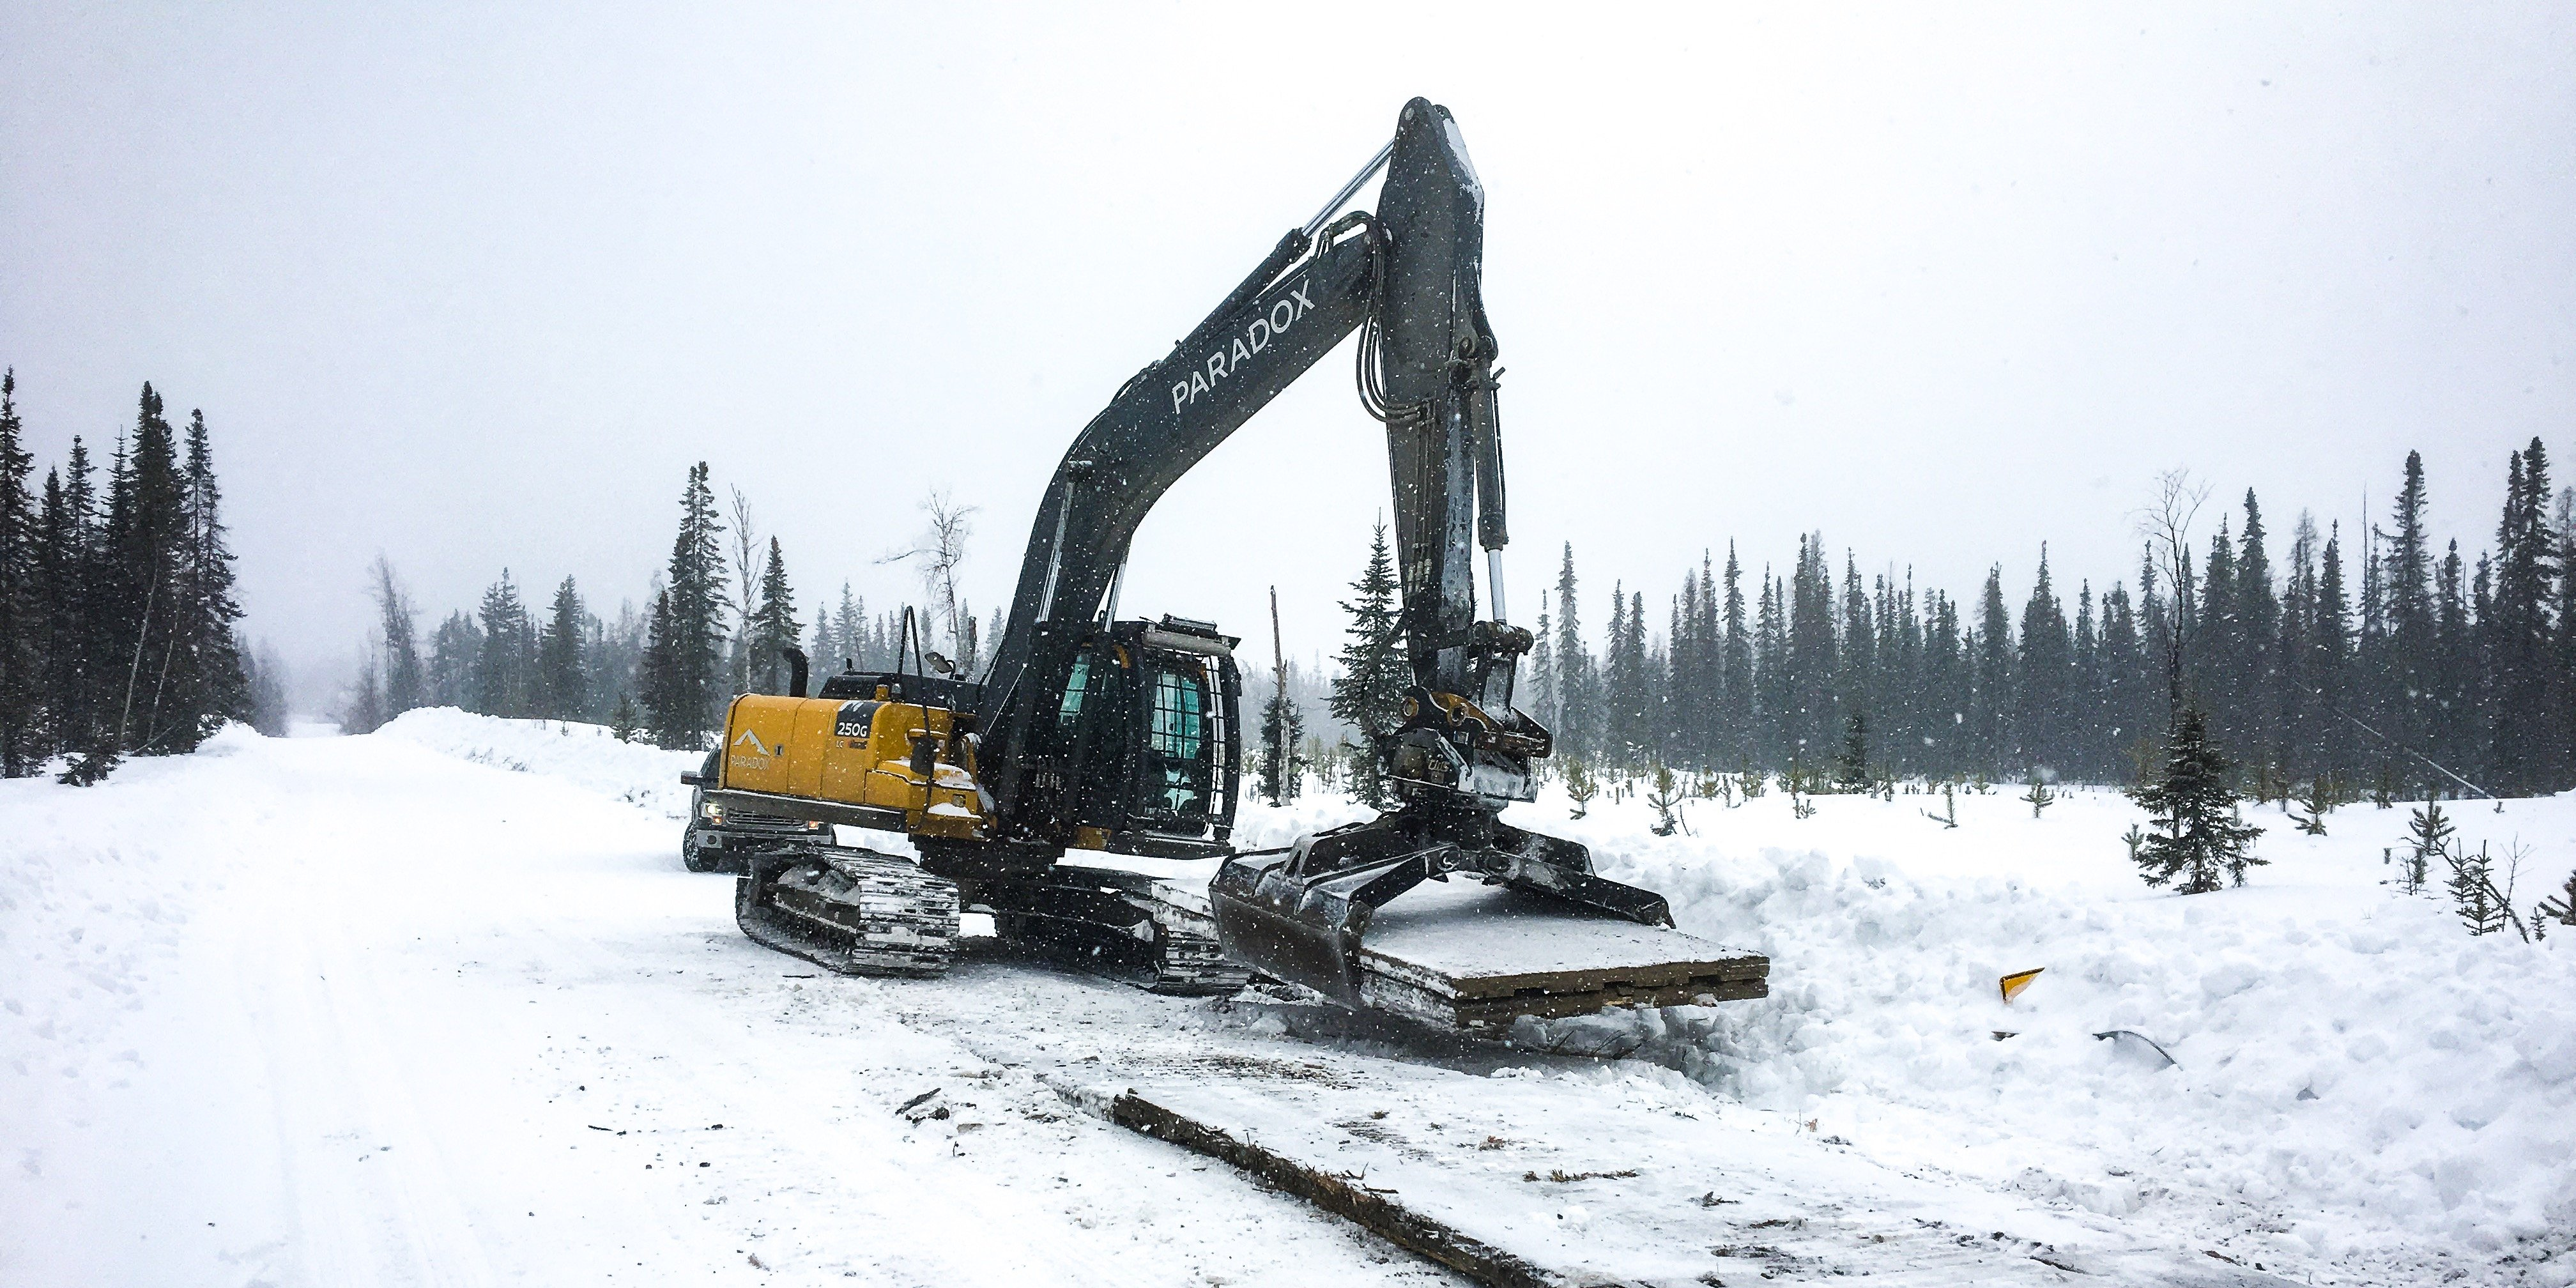 Access mats can be used to prepare work sites for winter.